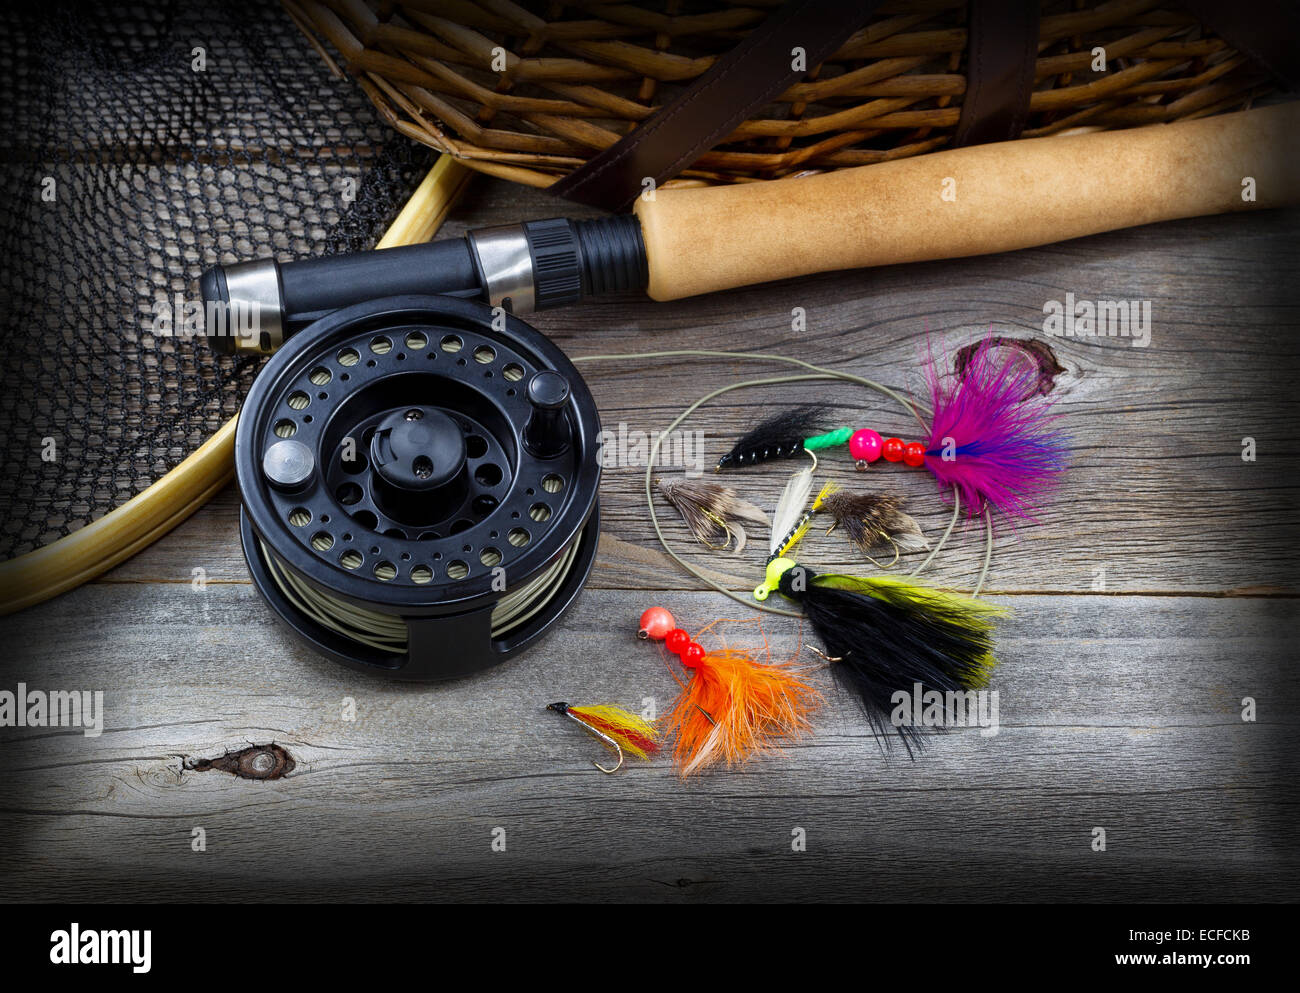 3d4f5ee14939b Fishing Rod And Creel Stock Photos   Fishing Rod And Creel Stock ...